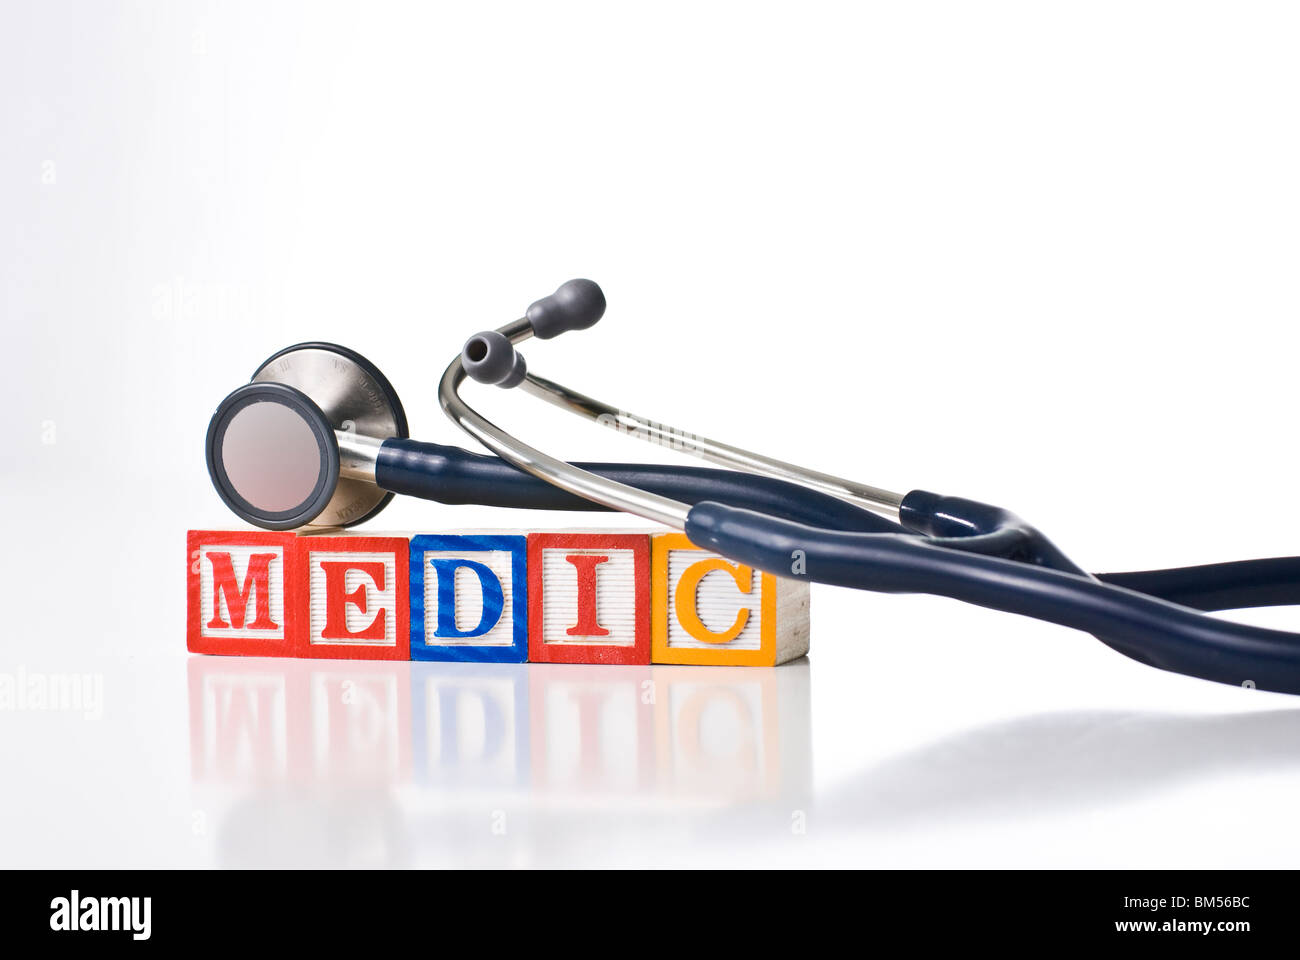 Colorful children's blocks that spell MEDIC with a stethoscope - Stock Image